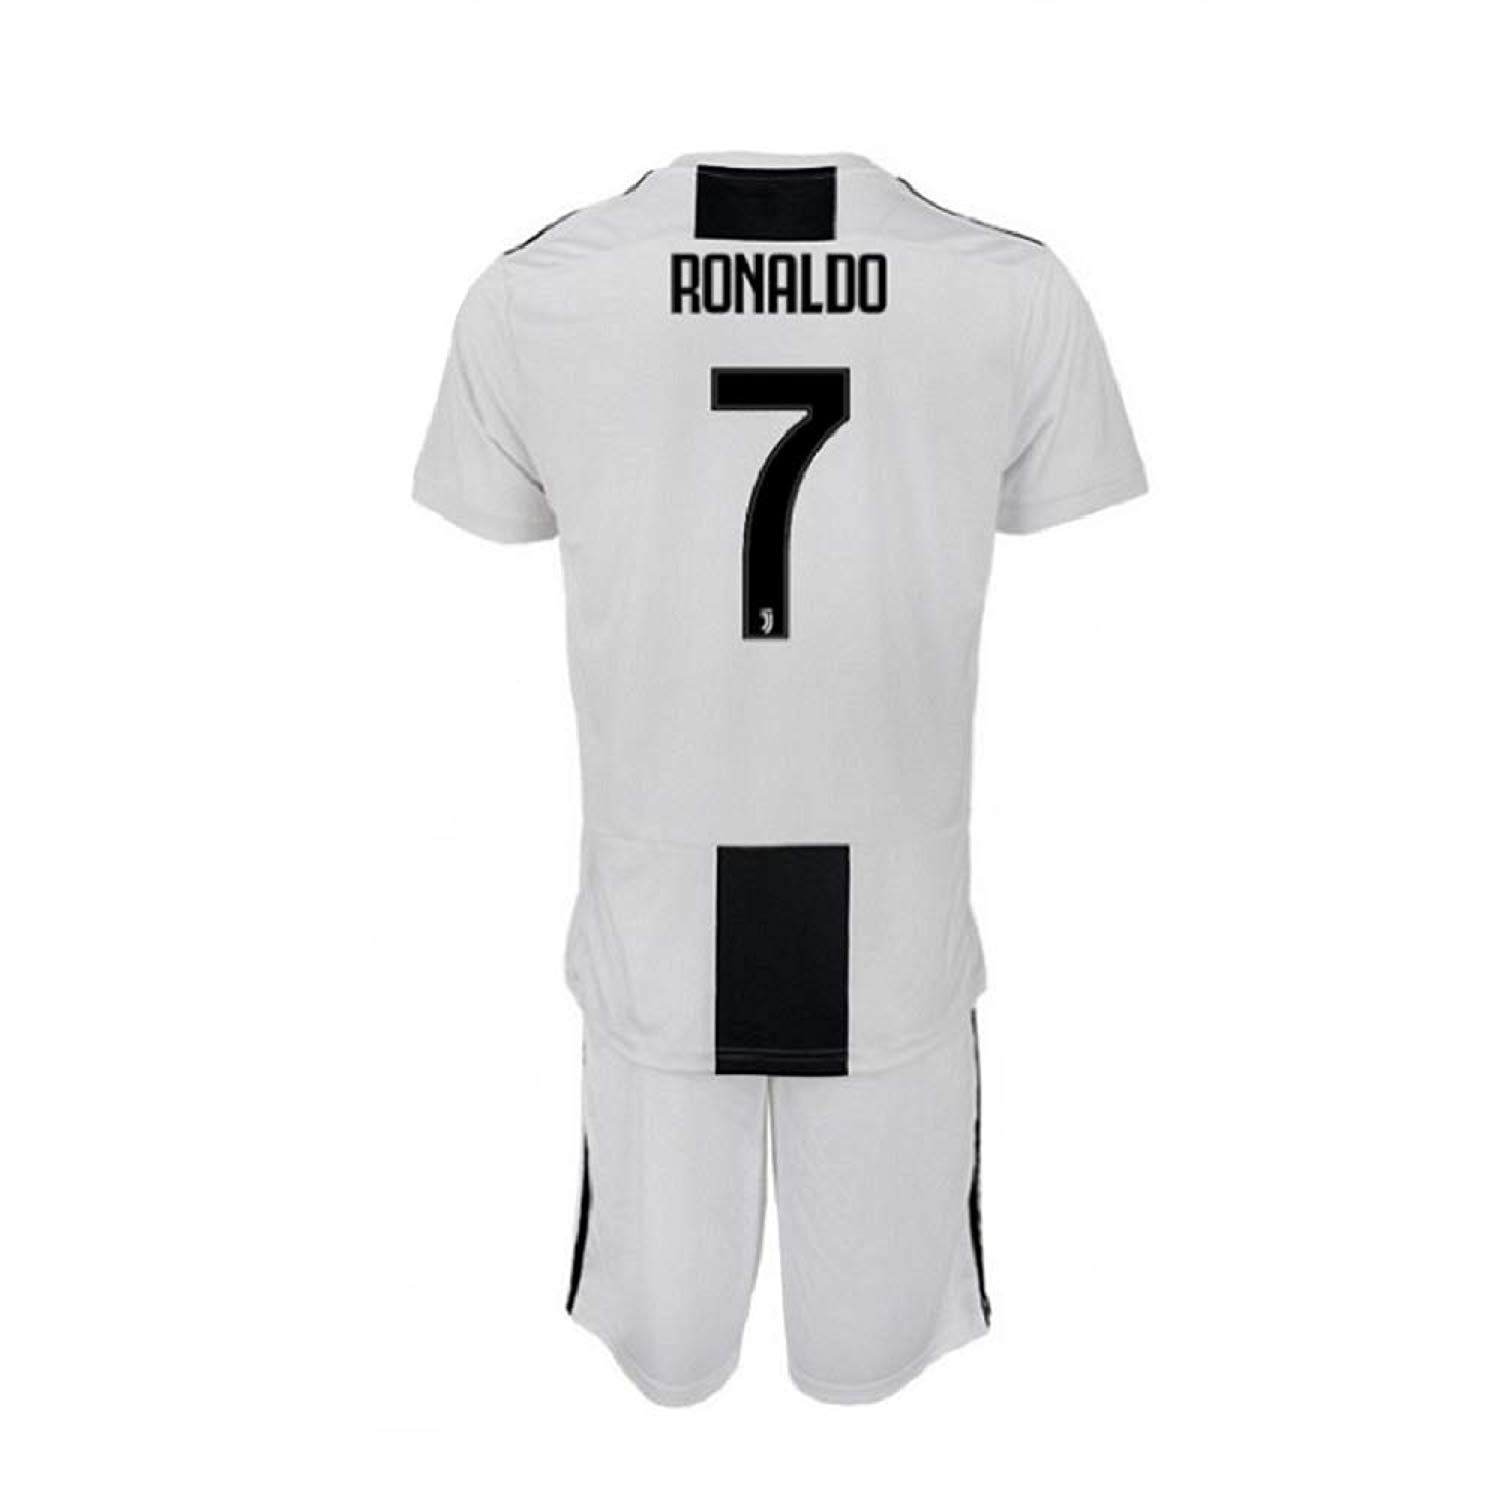 low priced 8808d f196d Cheap Ronaldo Shorts, find Ronaldo Shorts deals on line at ...